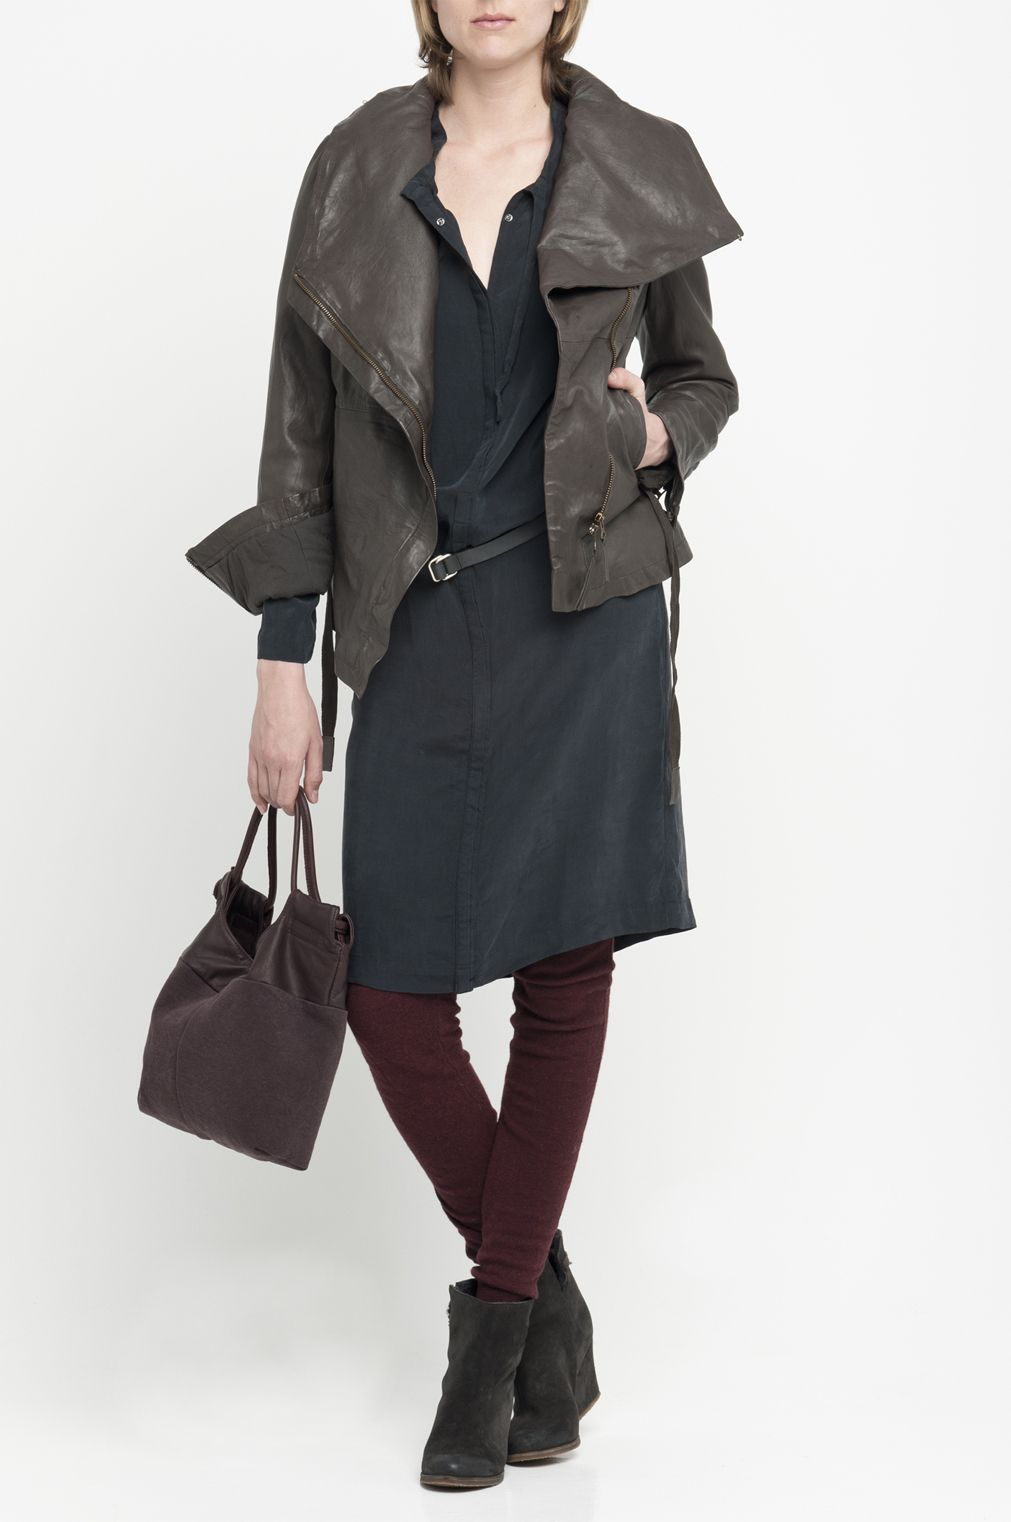 WELLE › JACKETS › colour coffee